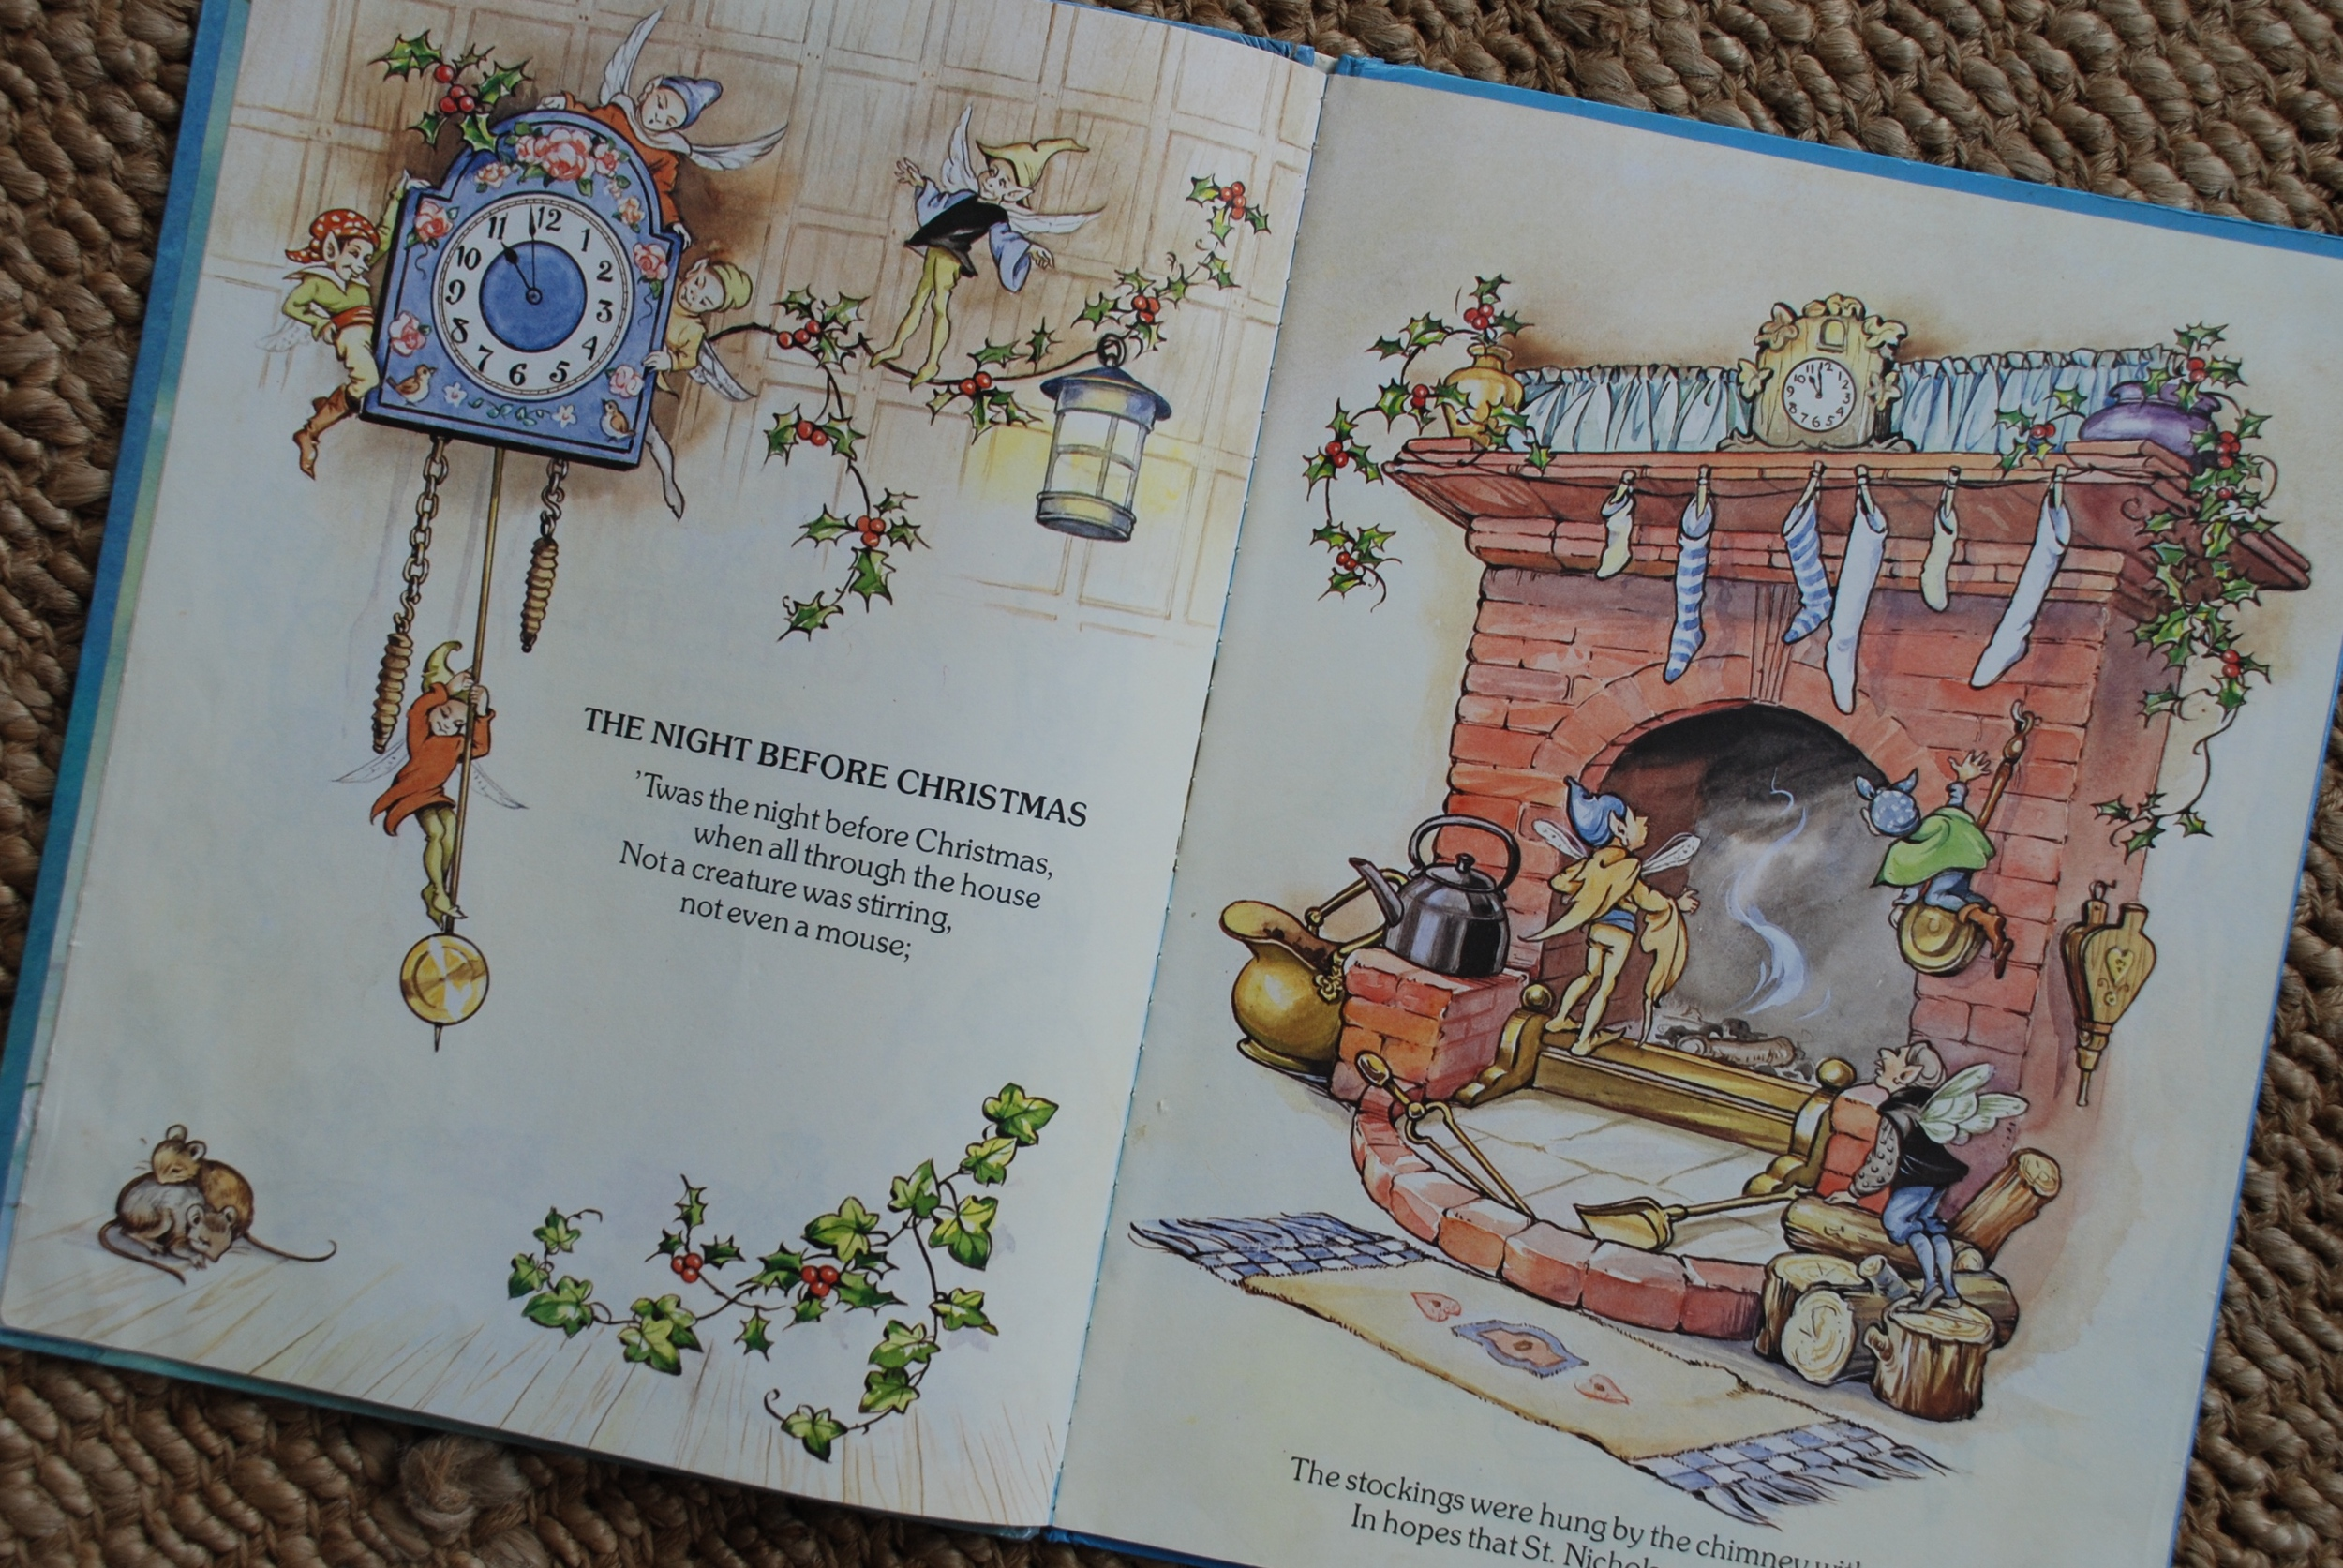 The Night Before Christmas by Clement C. Moore L.L.D, Illustrated by Rene Cloke